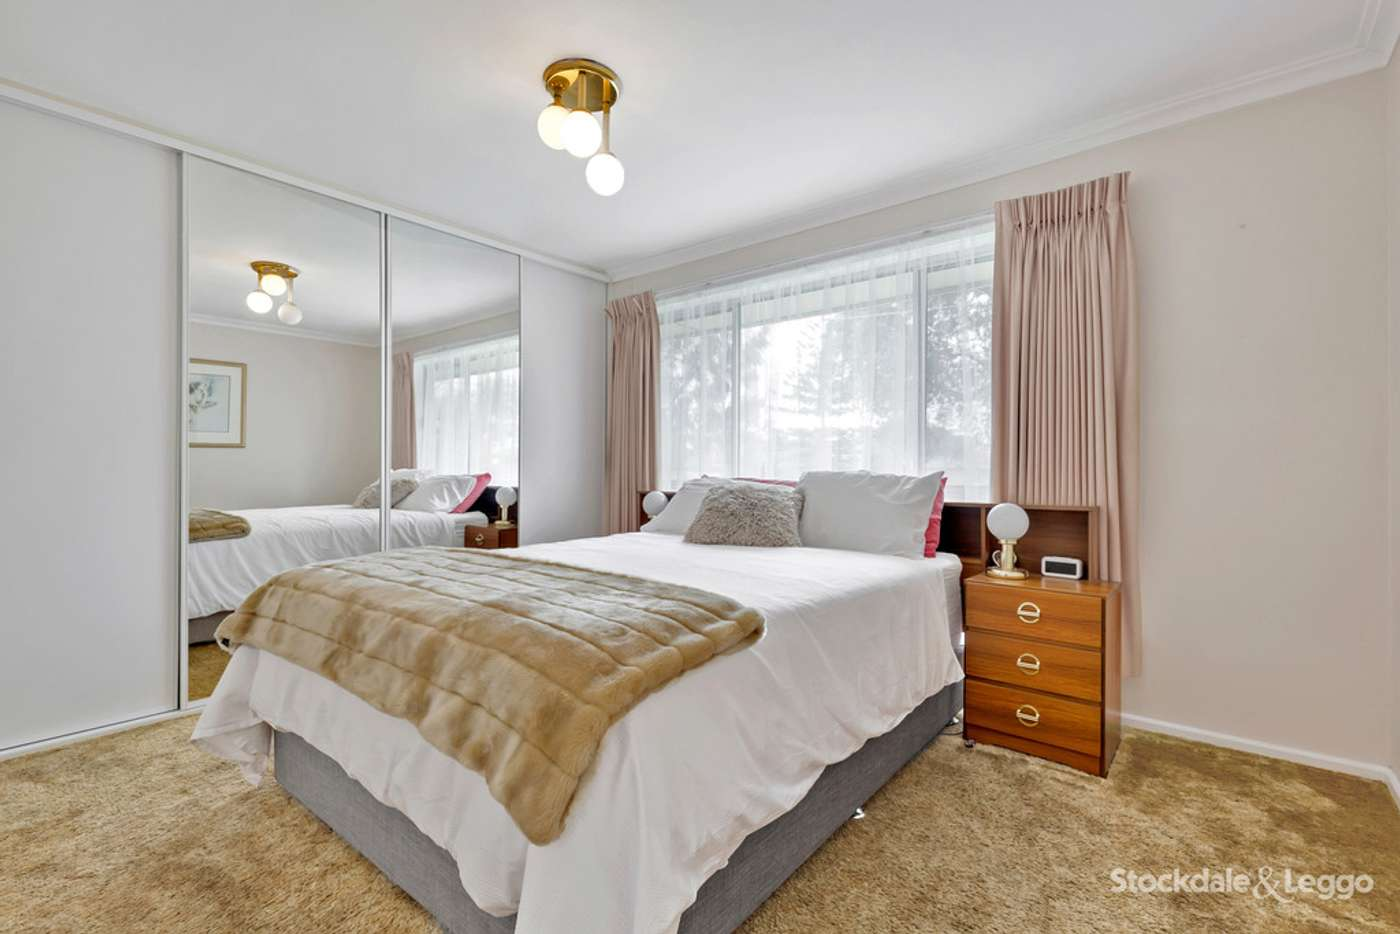 Fifth view of Homely house listing, 60 Somerlayton Crescent, Fawkner VIC 3060